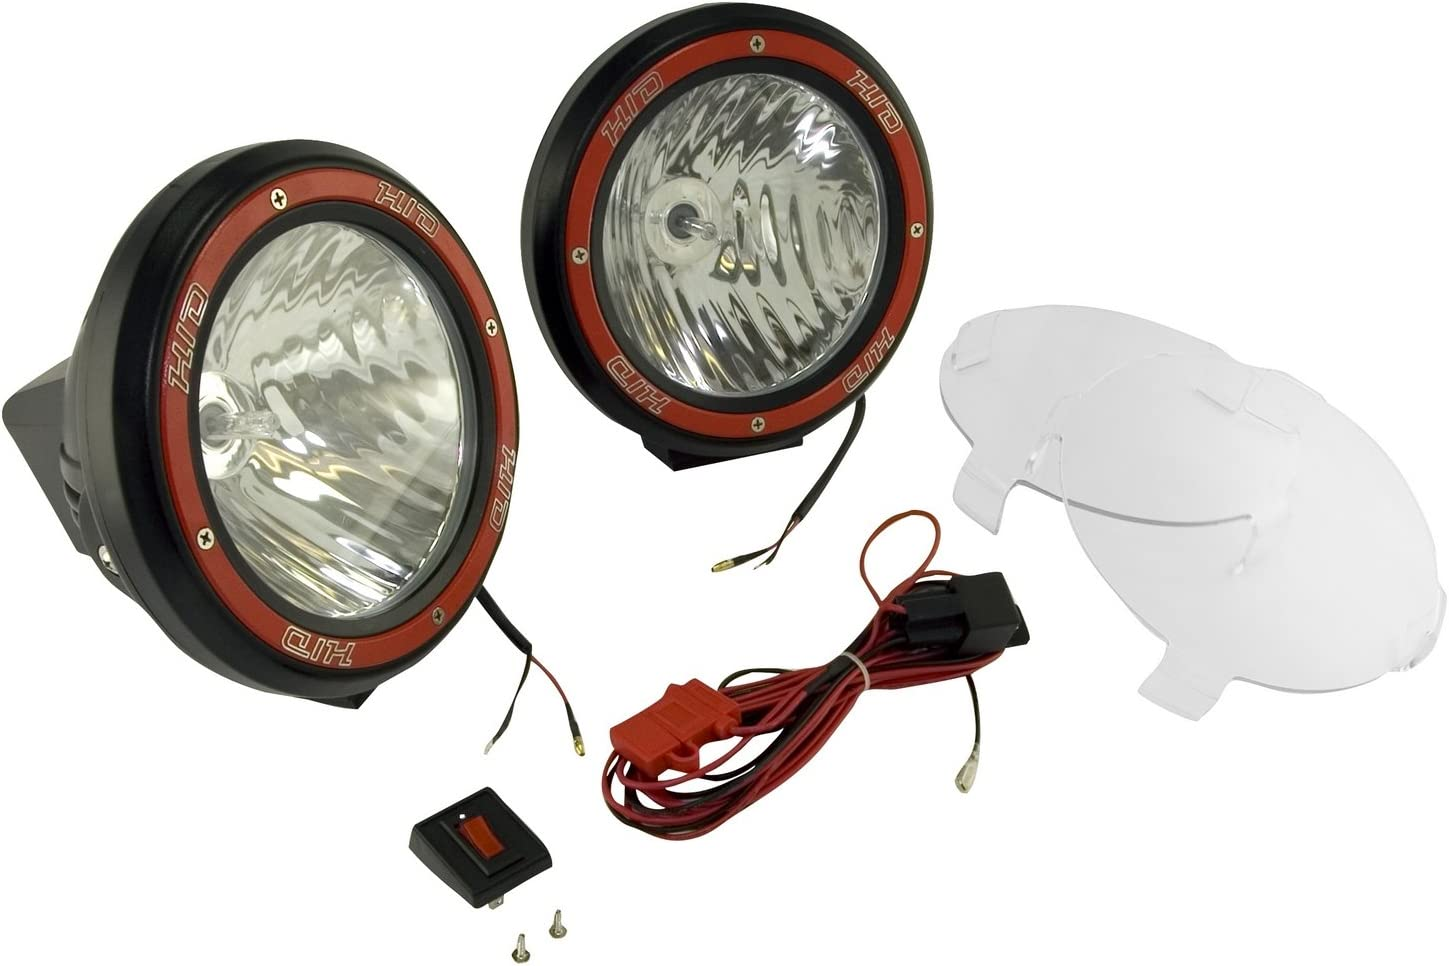 Rugged Ridge 15205.53 7-Inch Black Light Limited time cheap sale Round Manufacturer regenerated product with HID Off-Road